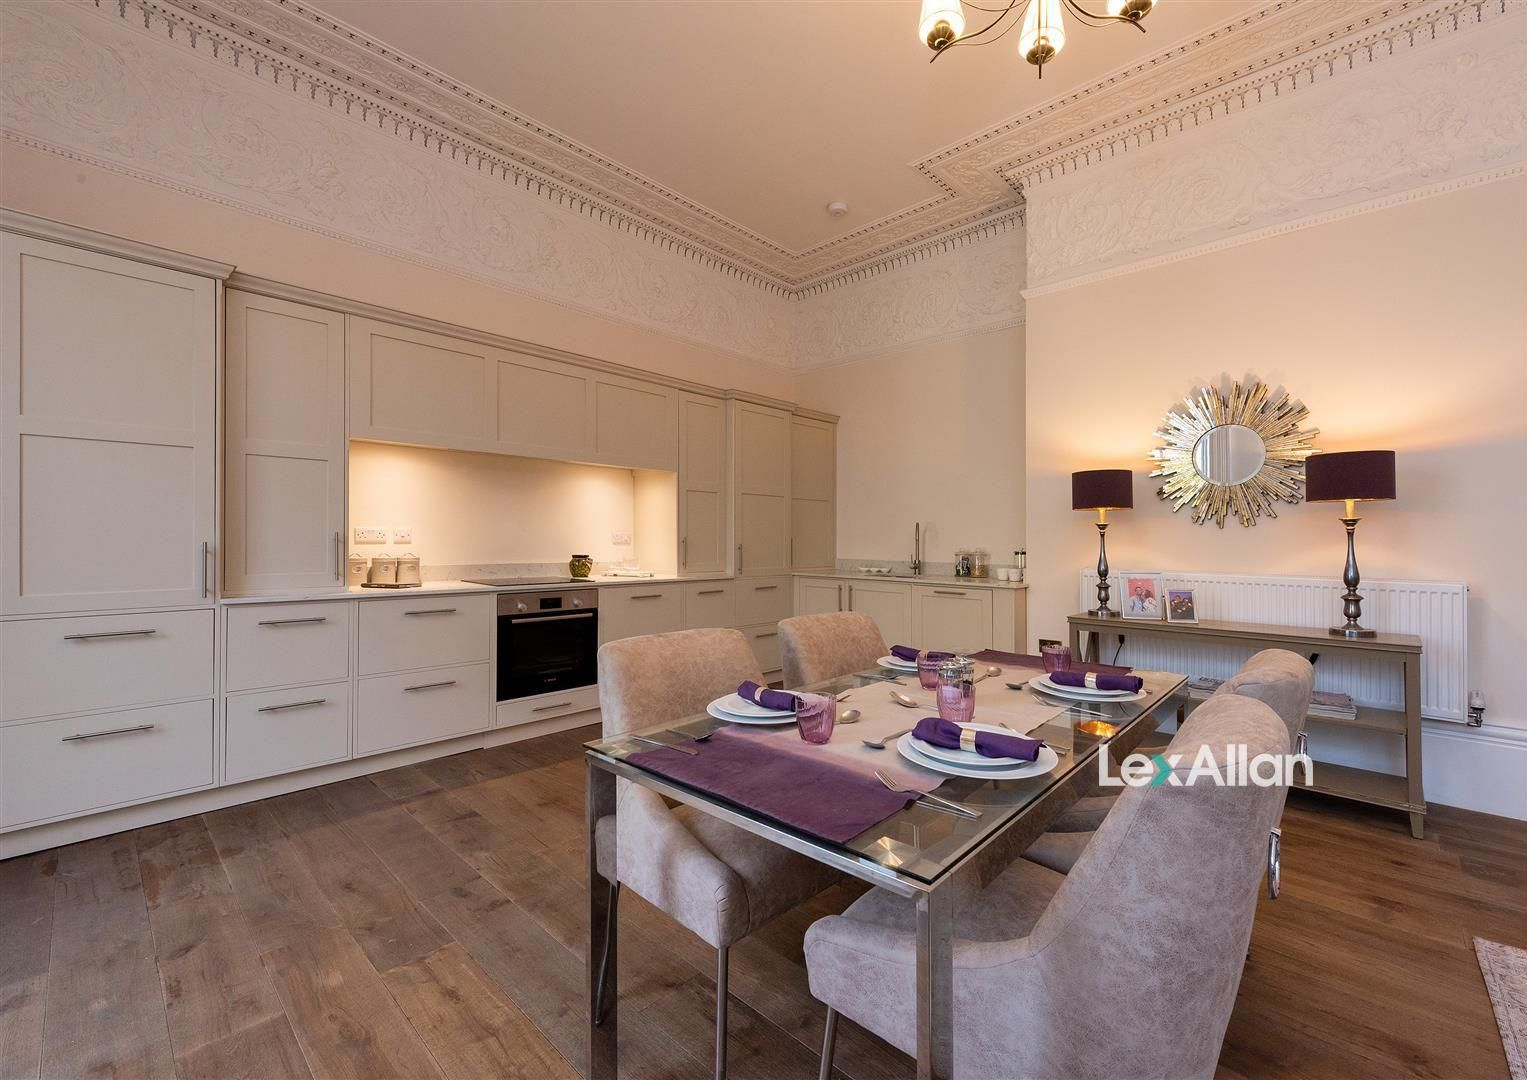 2 bed apartment for sale, DY6